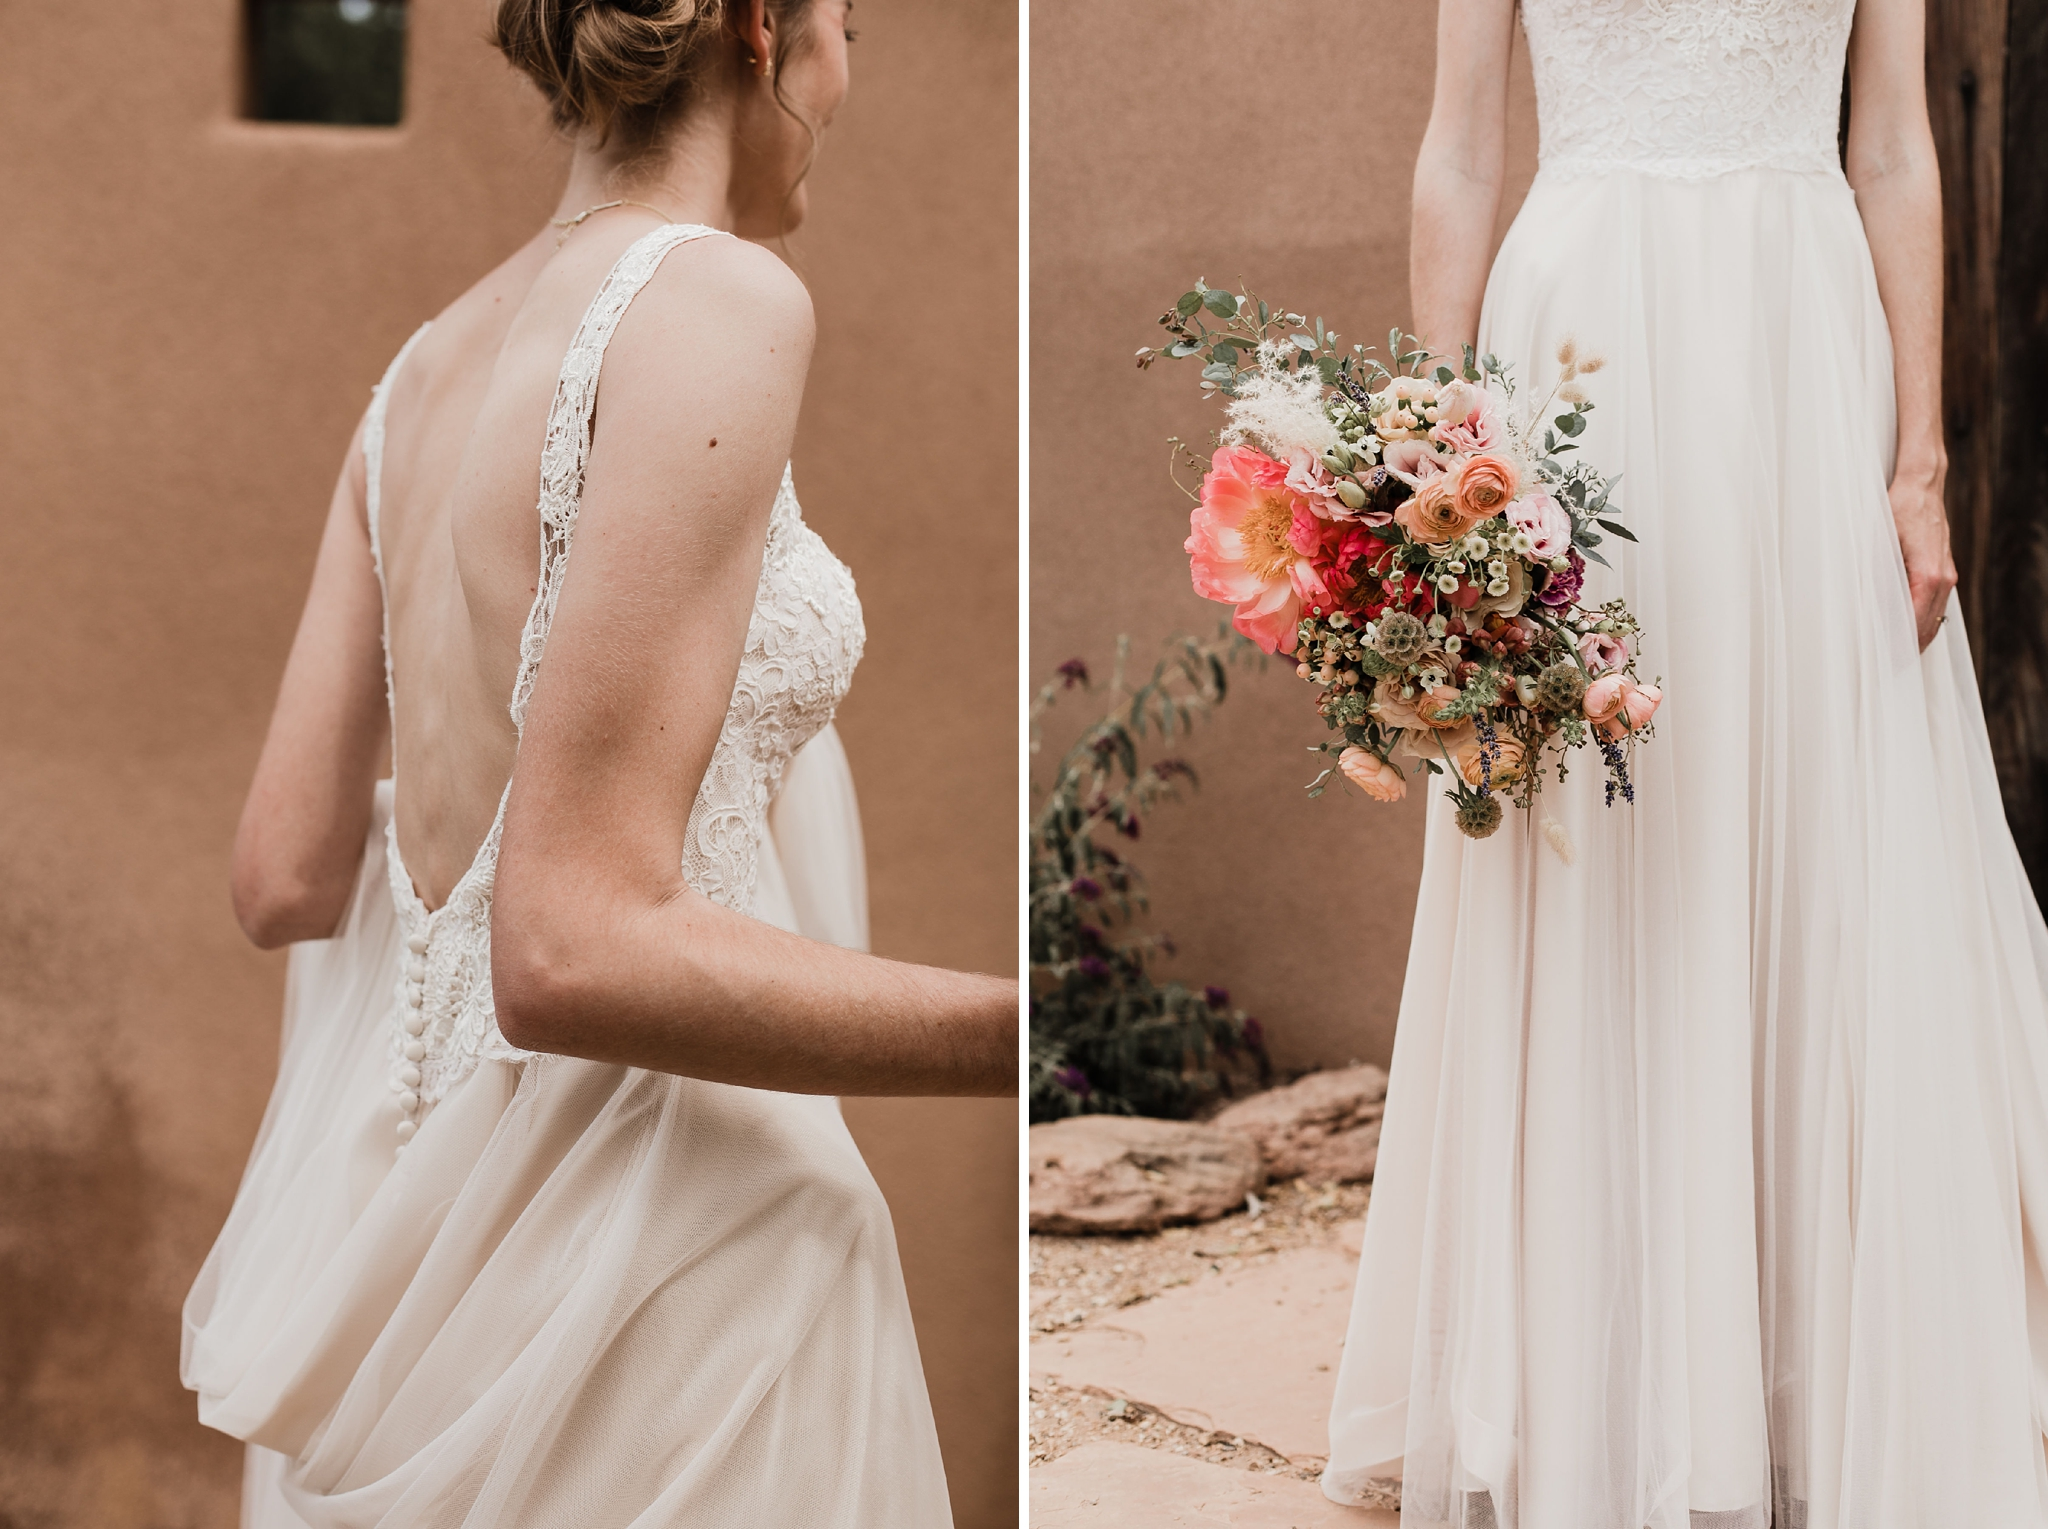 Alicia+lucia+photography+-+albuquerque+wedding+photographer+-+santa+fe+wedding+photography+-+new+mexico+wedding+photographer+-+new+mexico+wedding+-+wedding+gowns+-+bridal+gowns+-+a+line+wedding+gown_0017.jpg